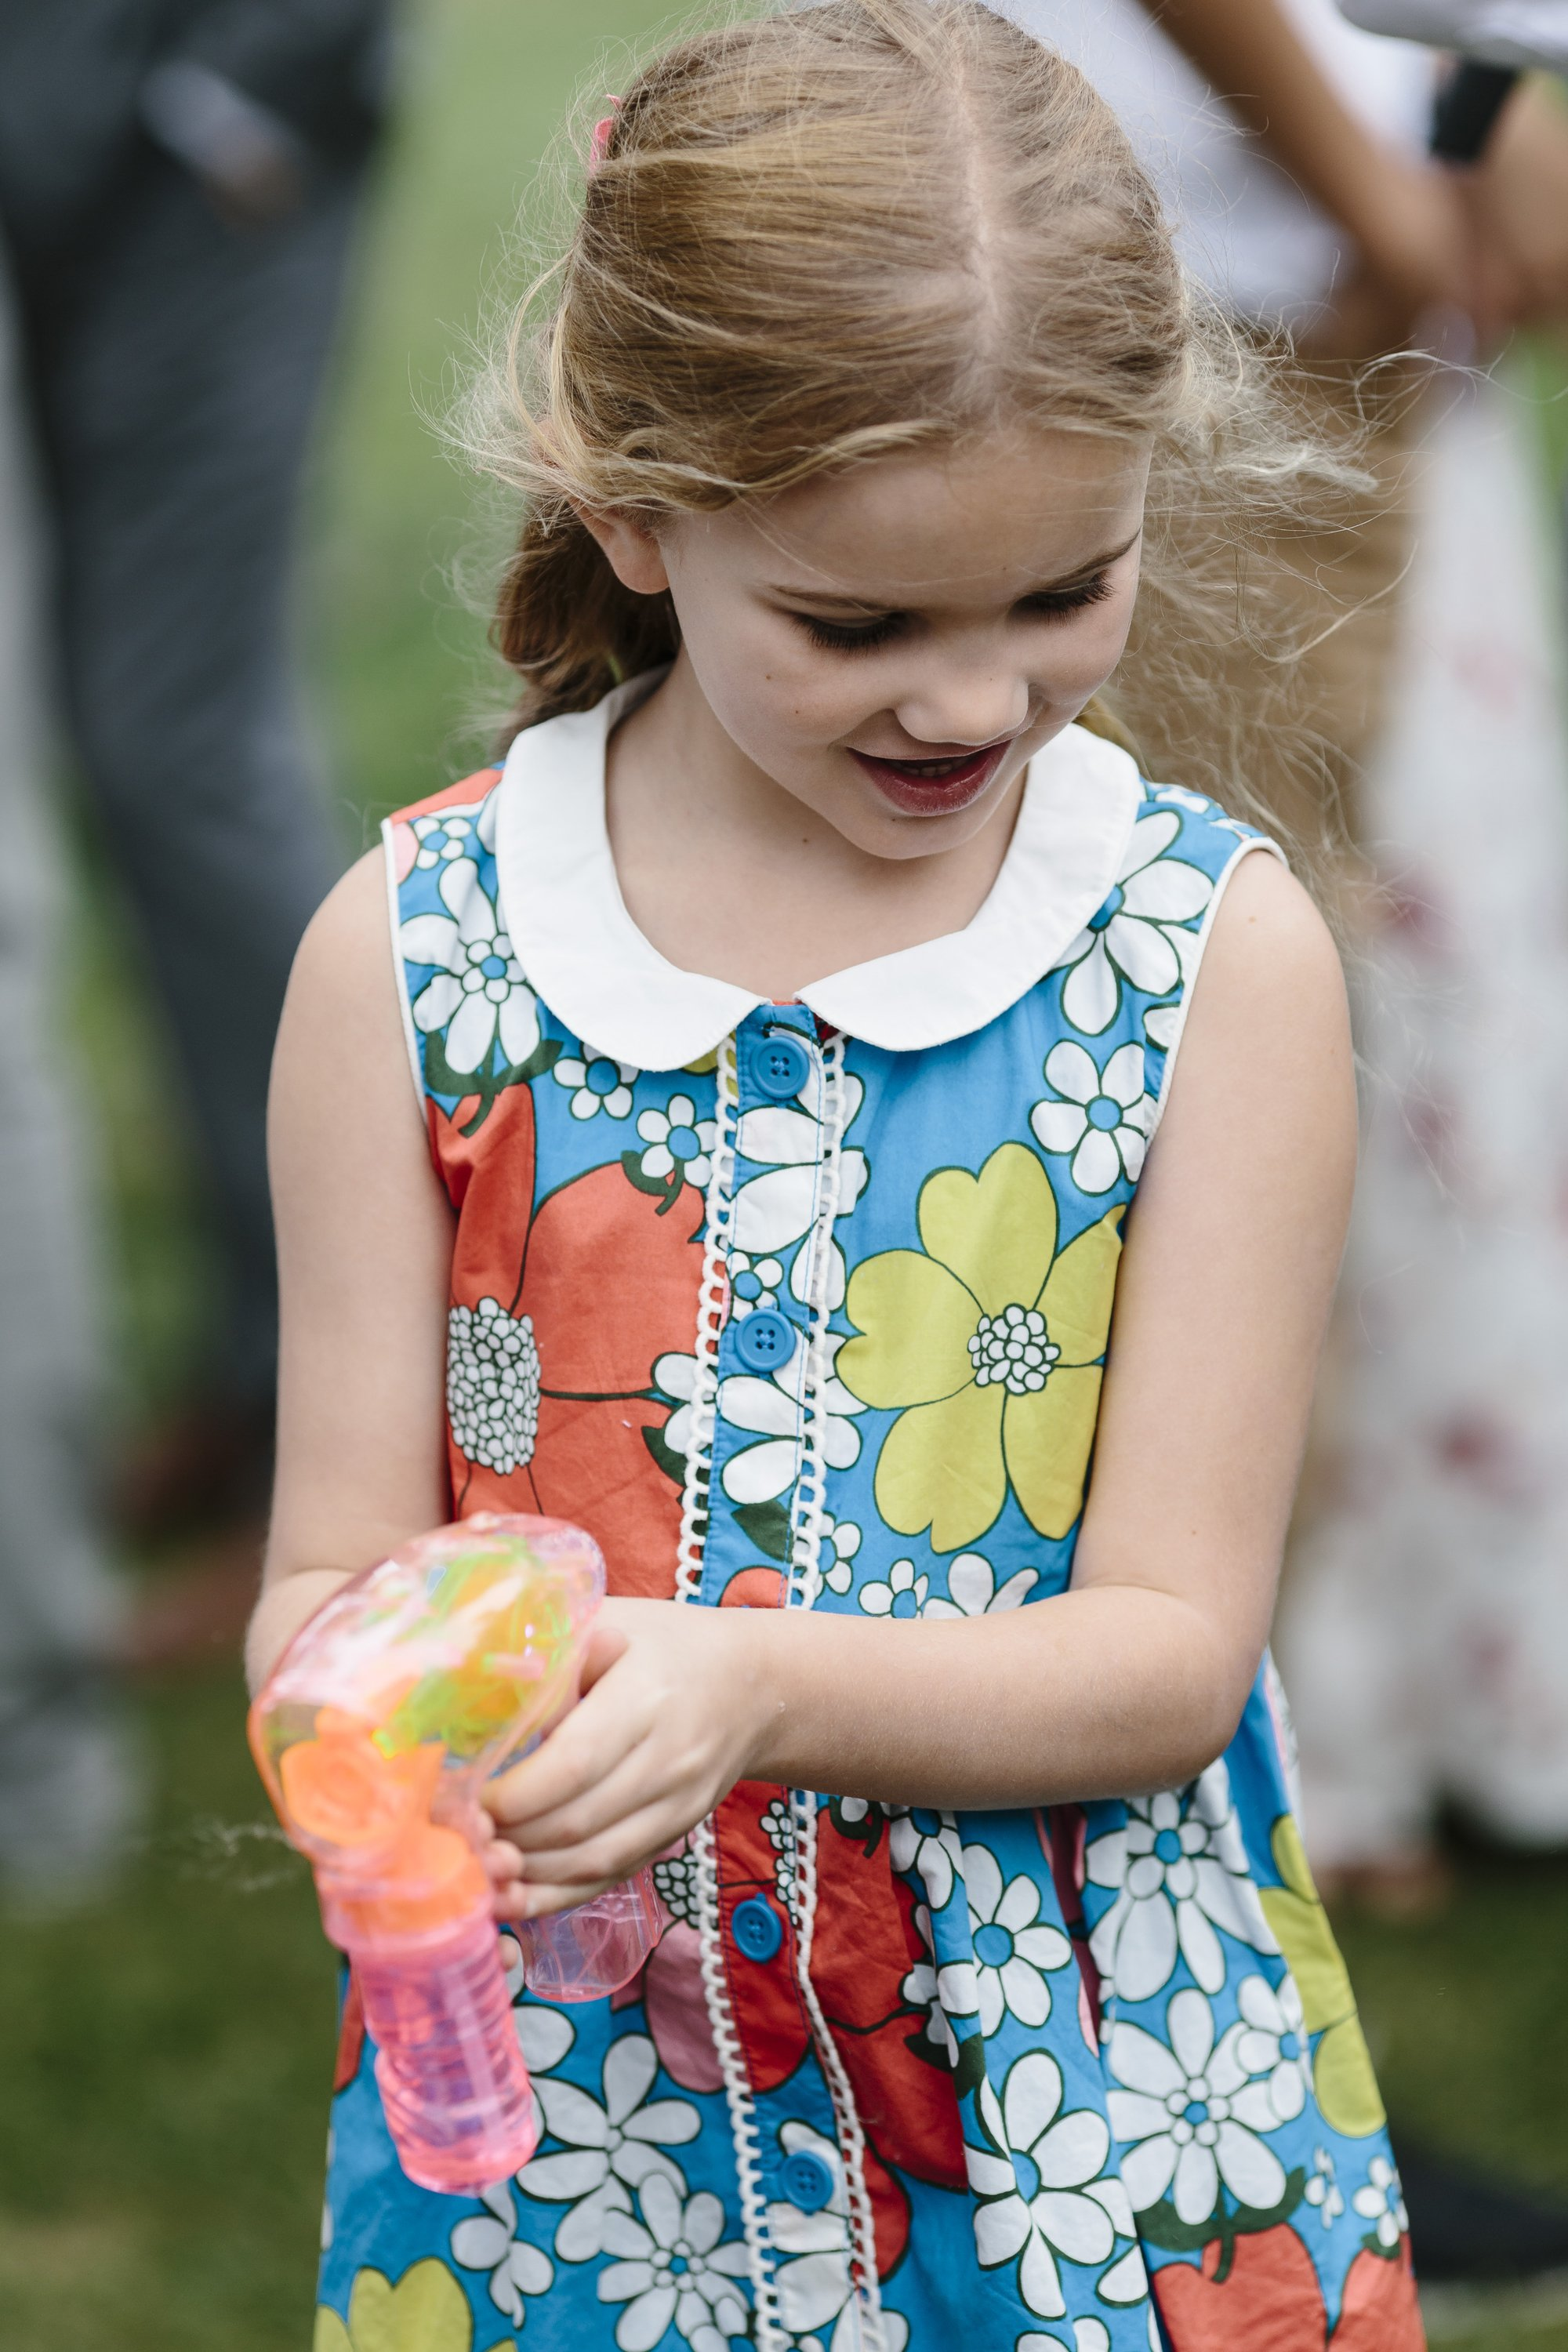 How to entertain kids at a wedding with a bubble gun